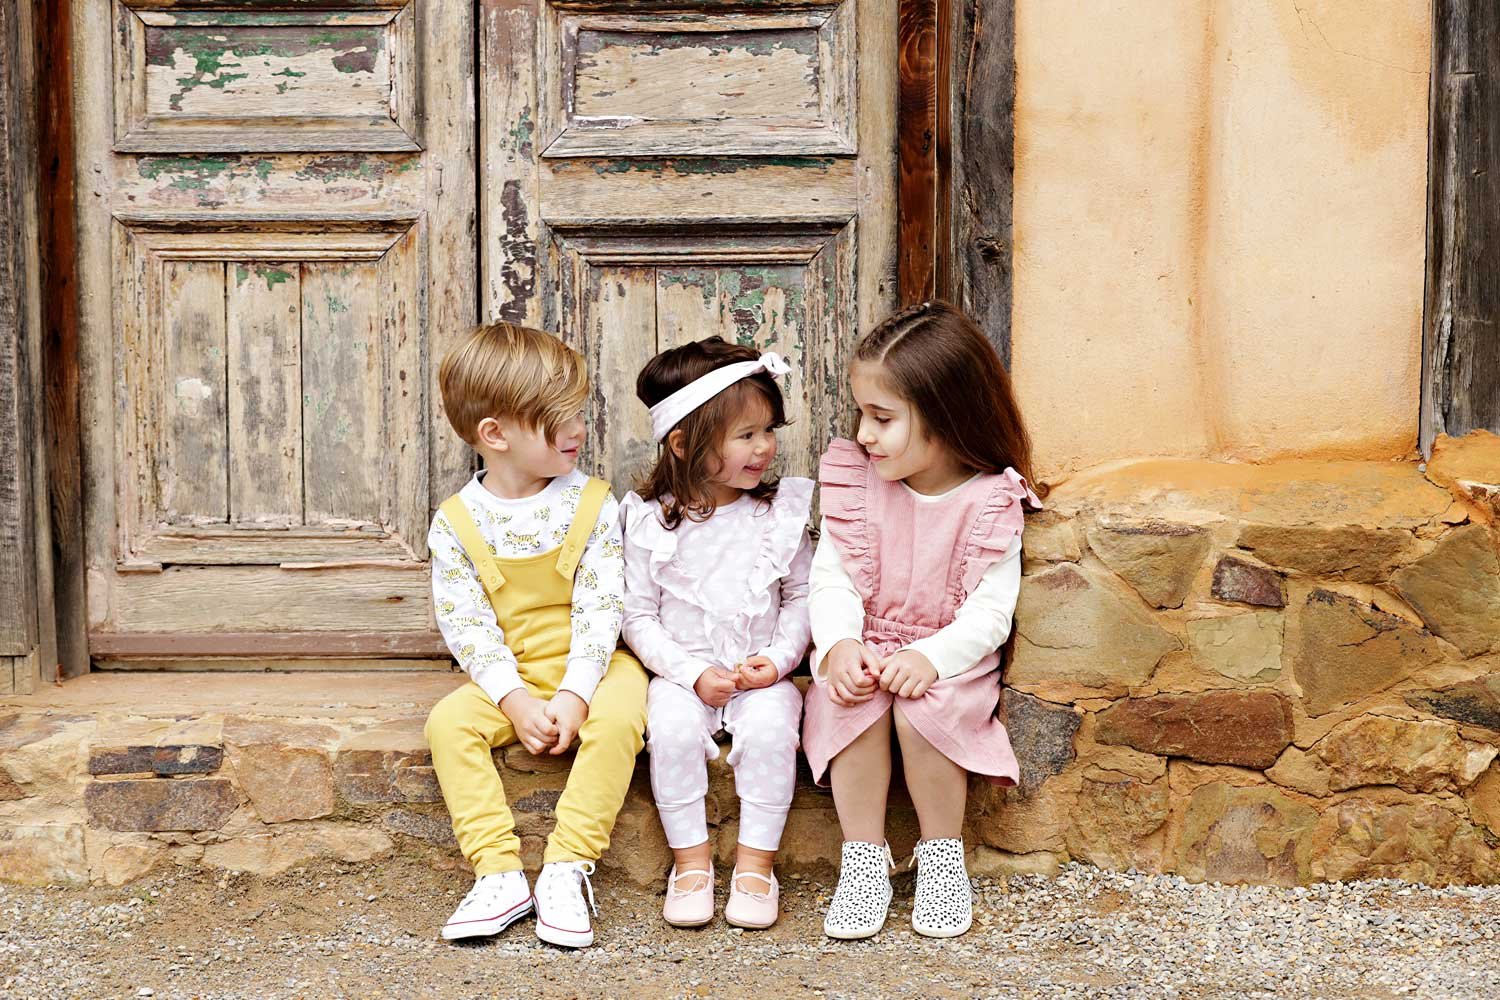 Kids' Fashion | Clothing, Accessories & Shoes Online | EDGARS